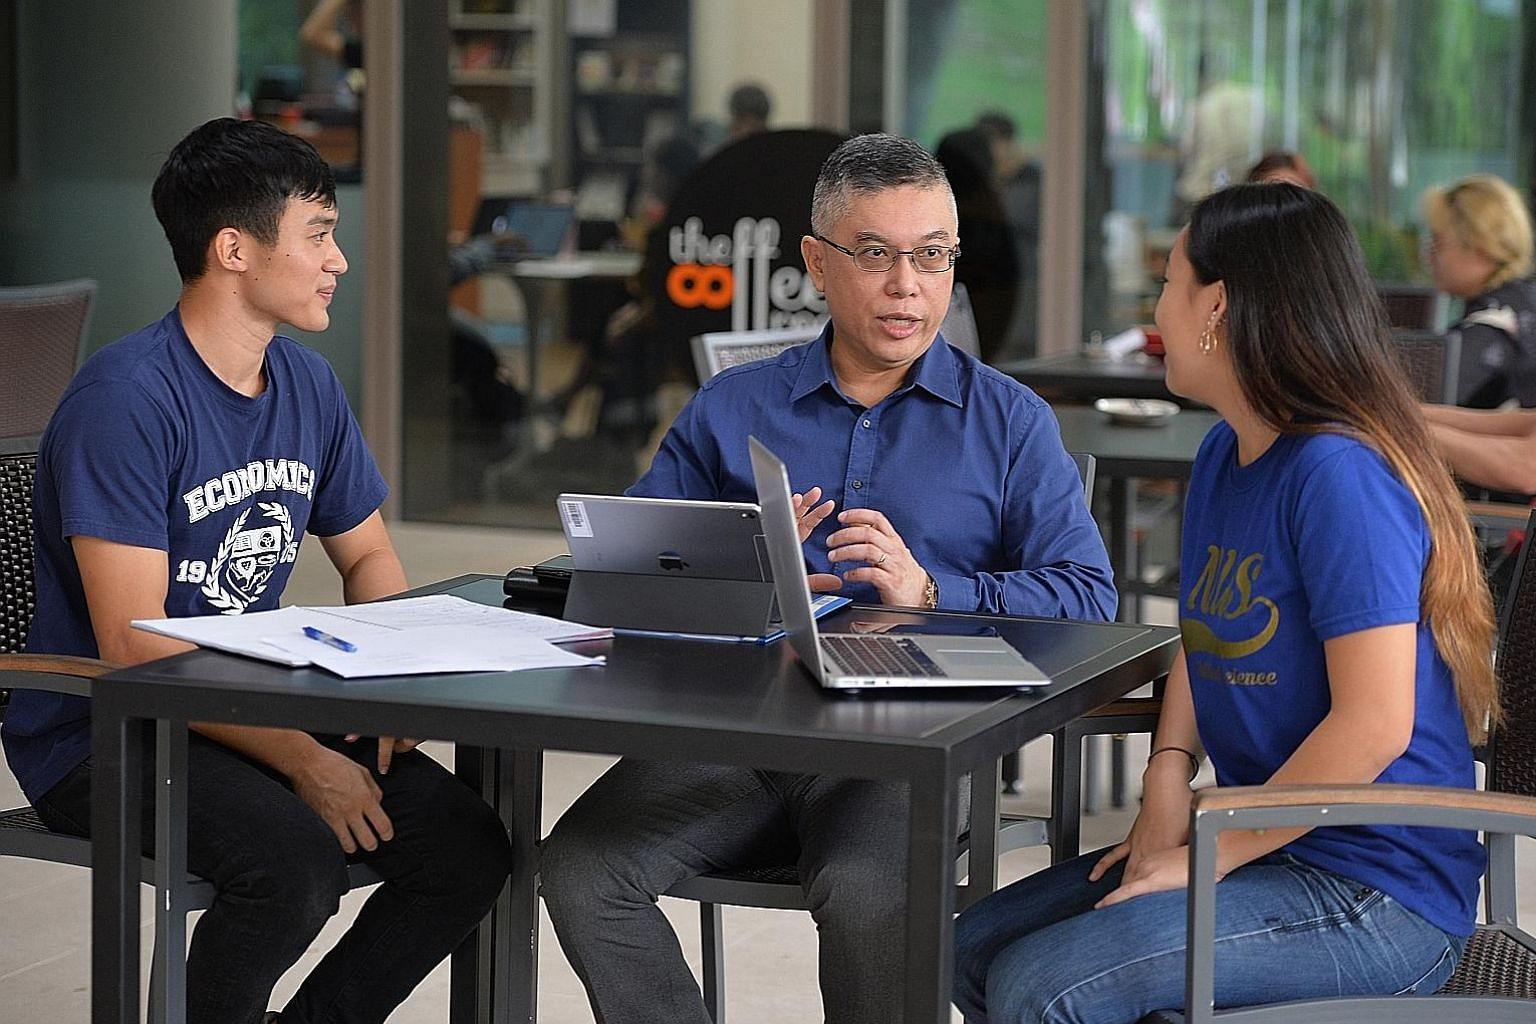 National University of Singapore's Faculty of Arts and Social Sciences dean, Professor Robbie Goh, chatting with two first-year students from his faculty, Mr Ashruff Muhammed Ibrahim, 22, who is keen on pursuing economics, and Ms Nelle Ng, 19, a poli